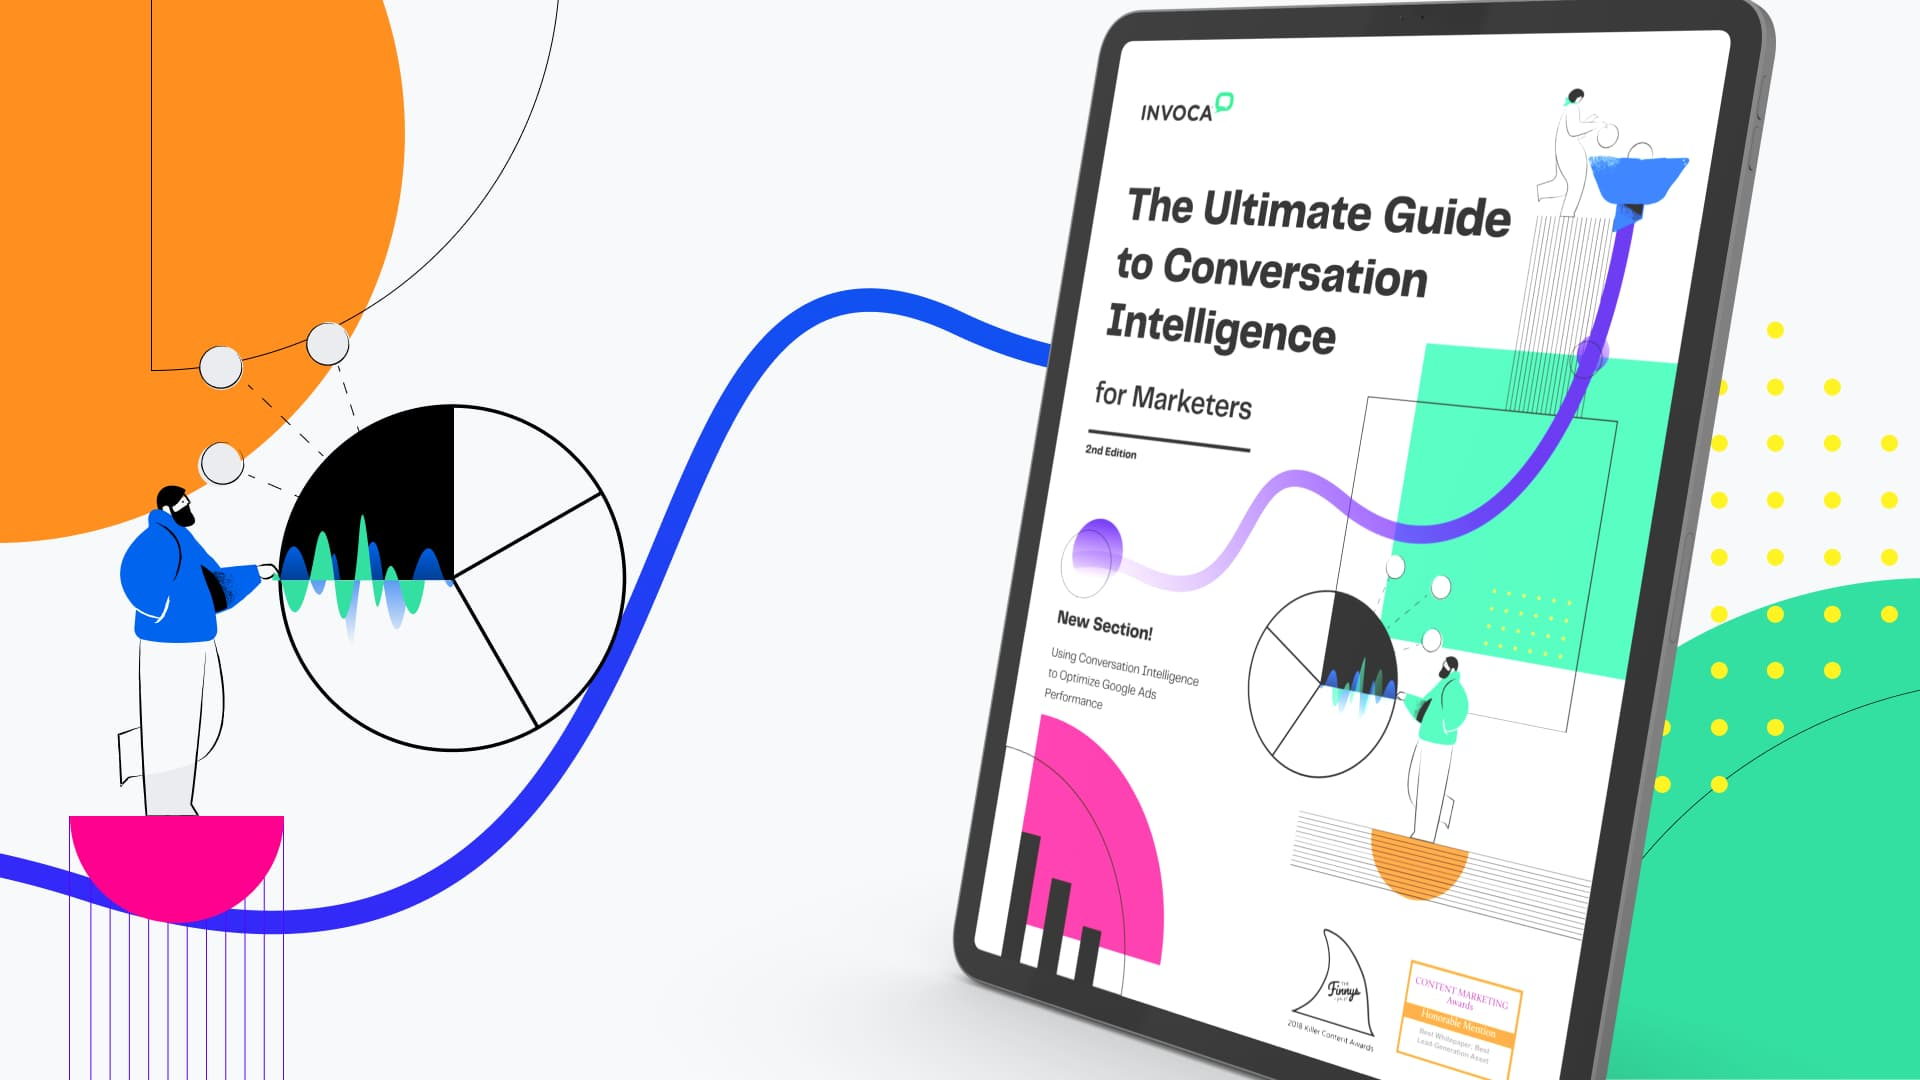 Introducing the Ultimate Guide to Conversation Intelligence for Marketers